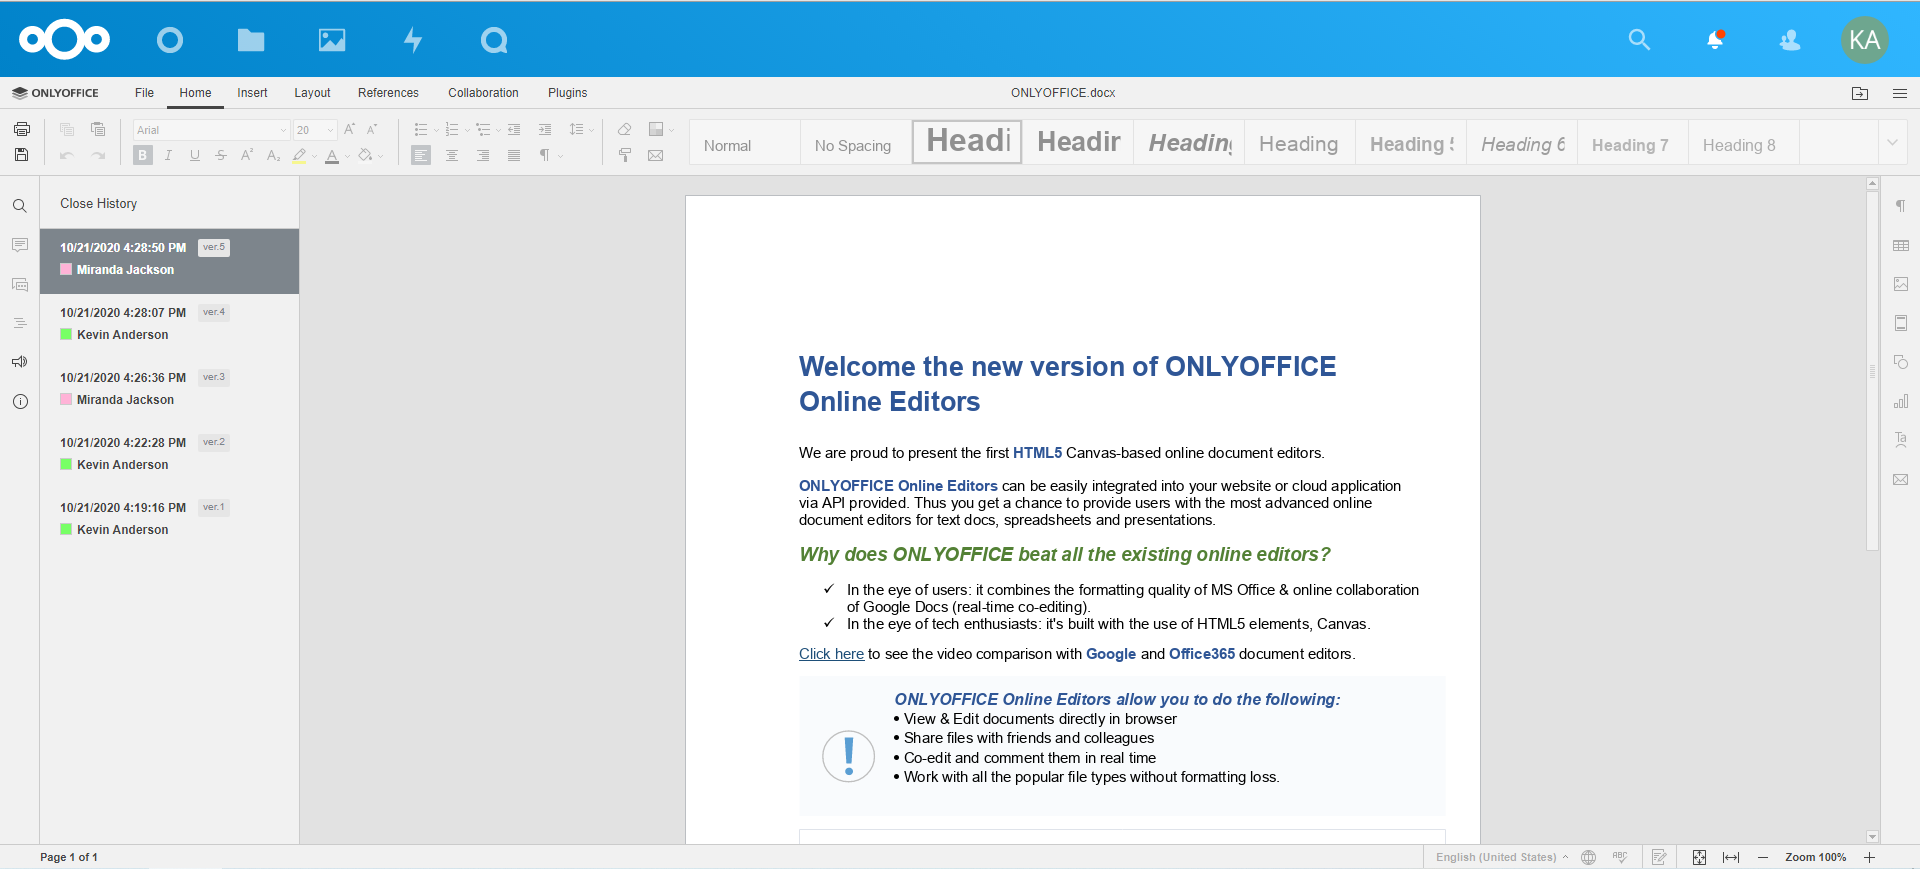 ONLYOFFICE connector for Nextcloud: welcome the new version